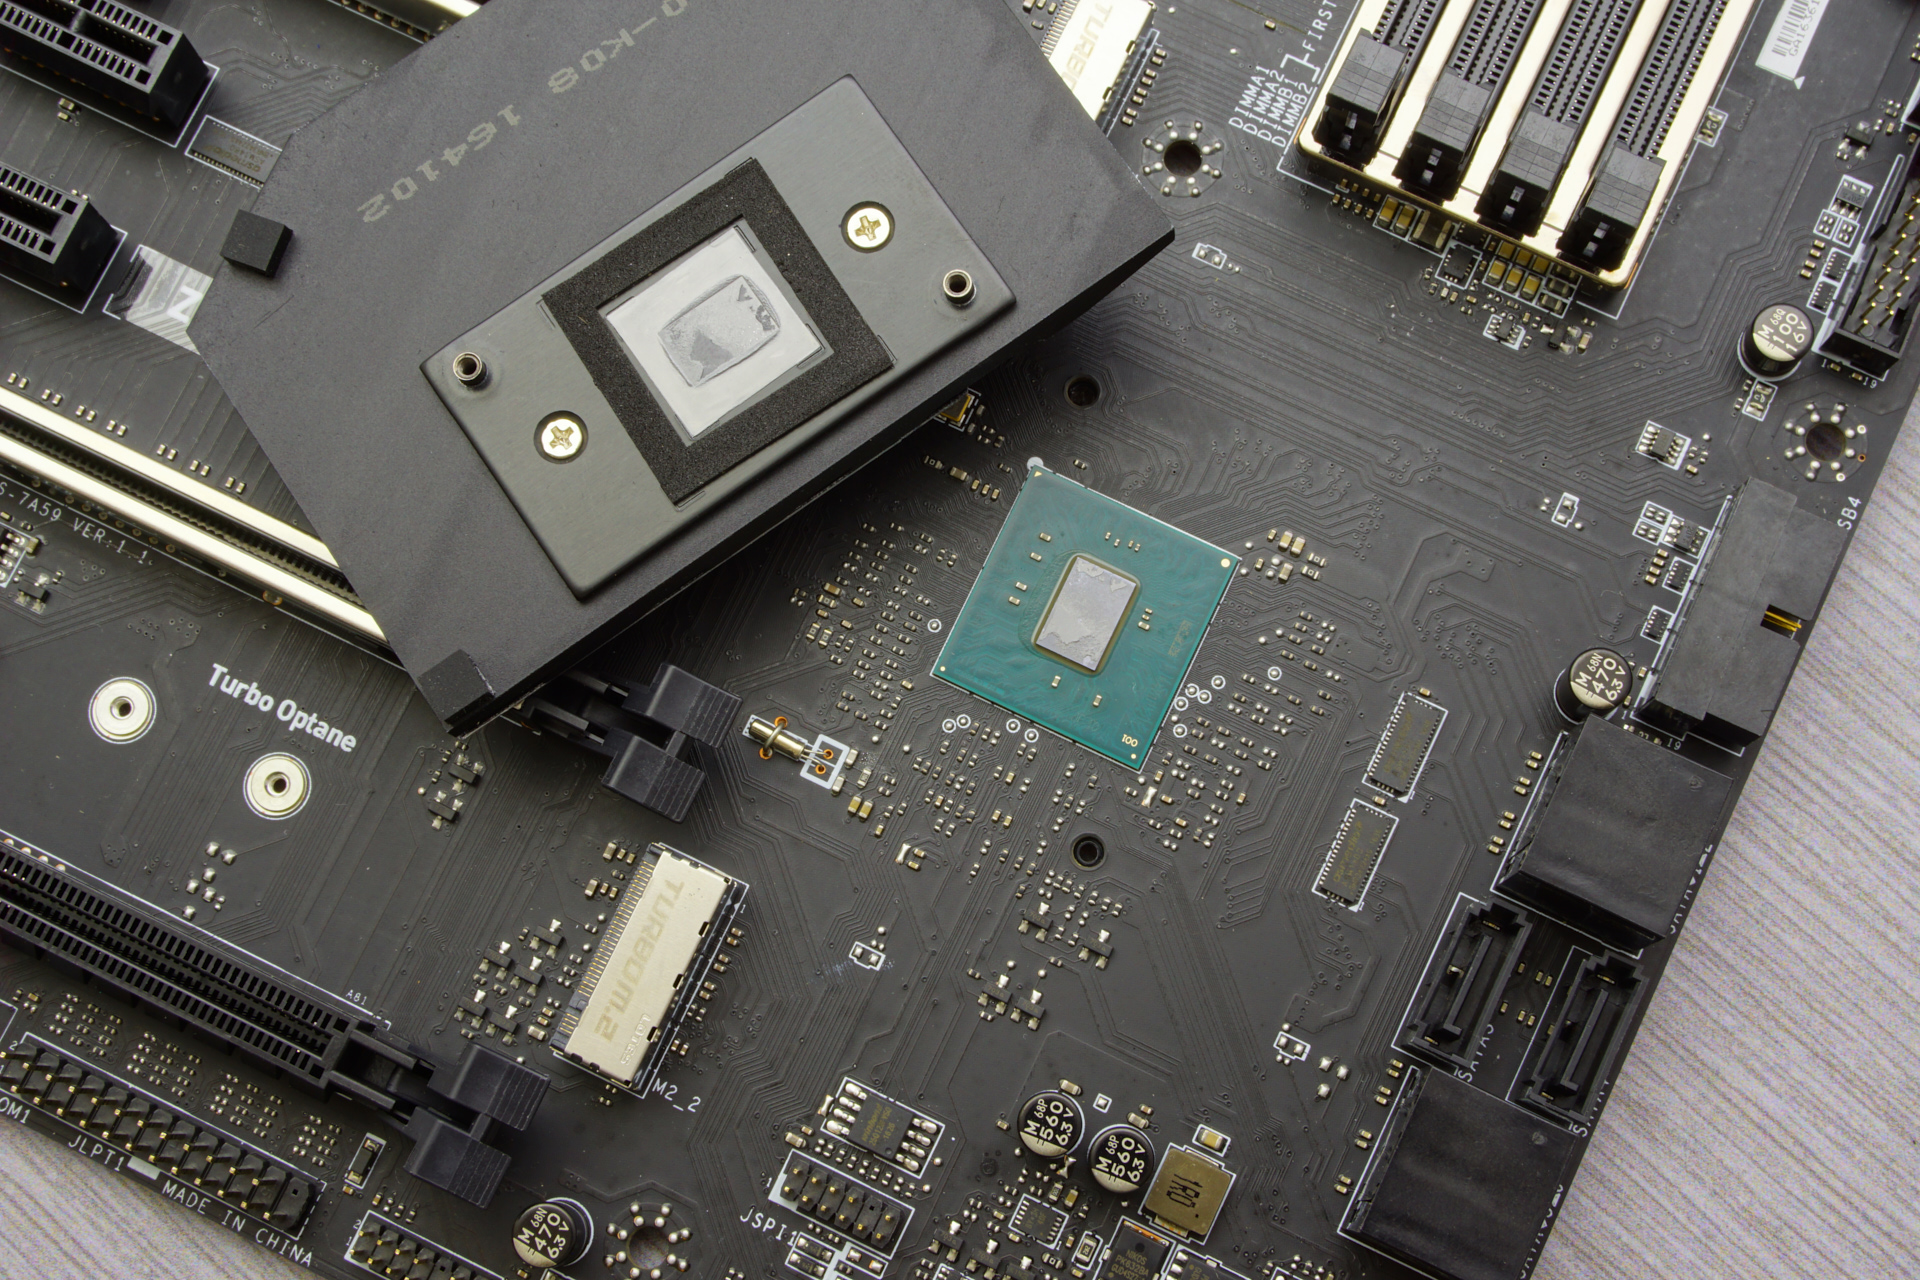 MSI Z270 SLI Plus Board Features, Visual Inspection - Kaby